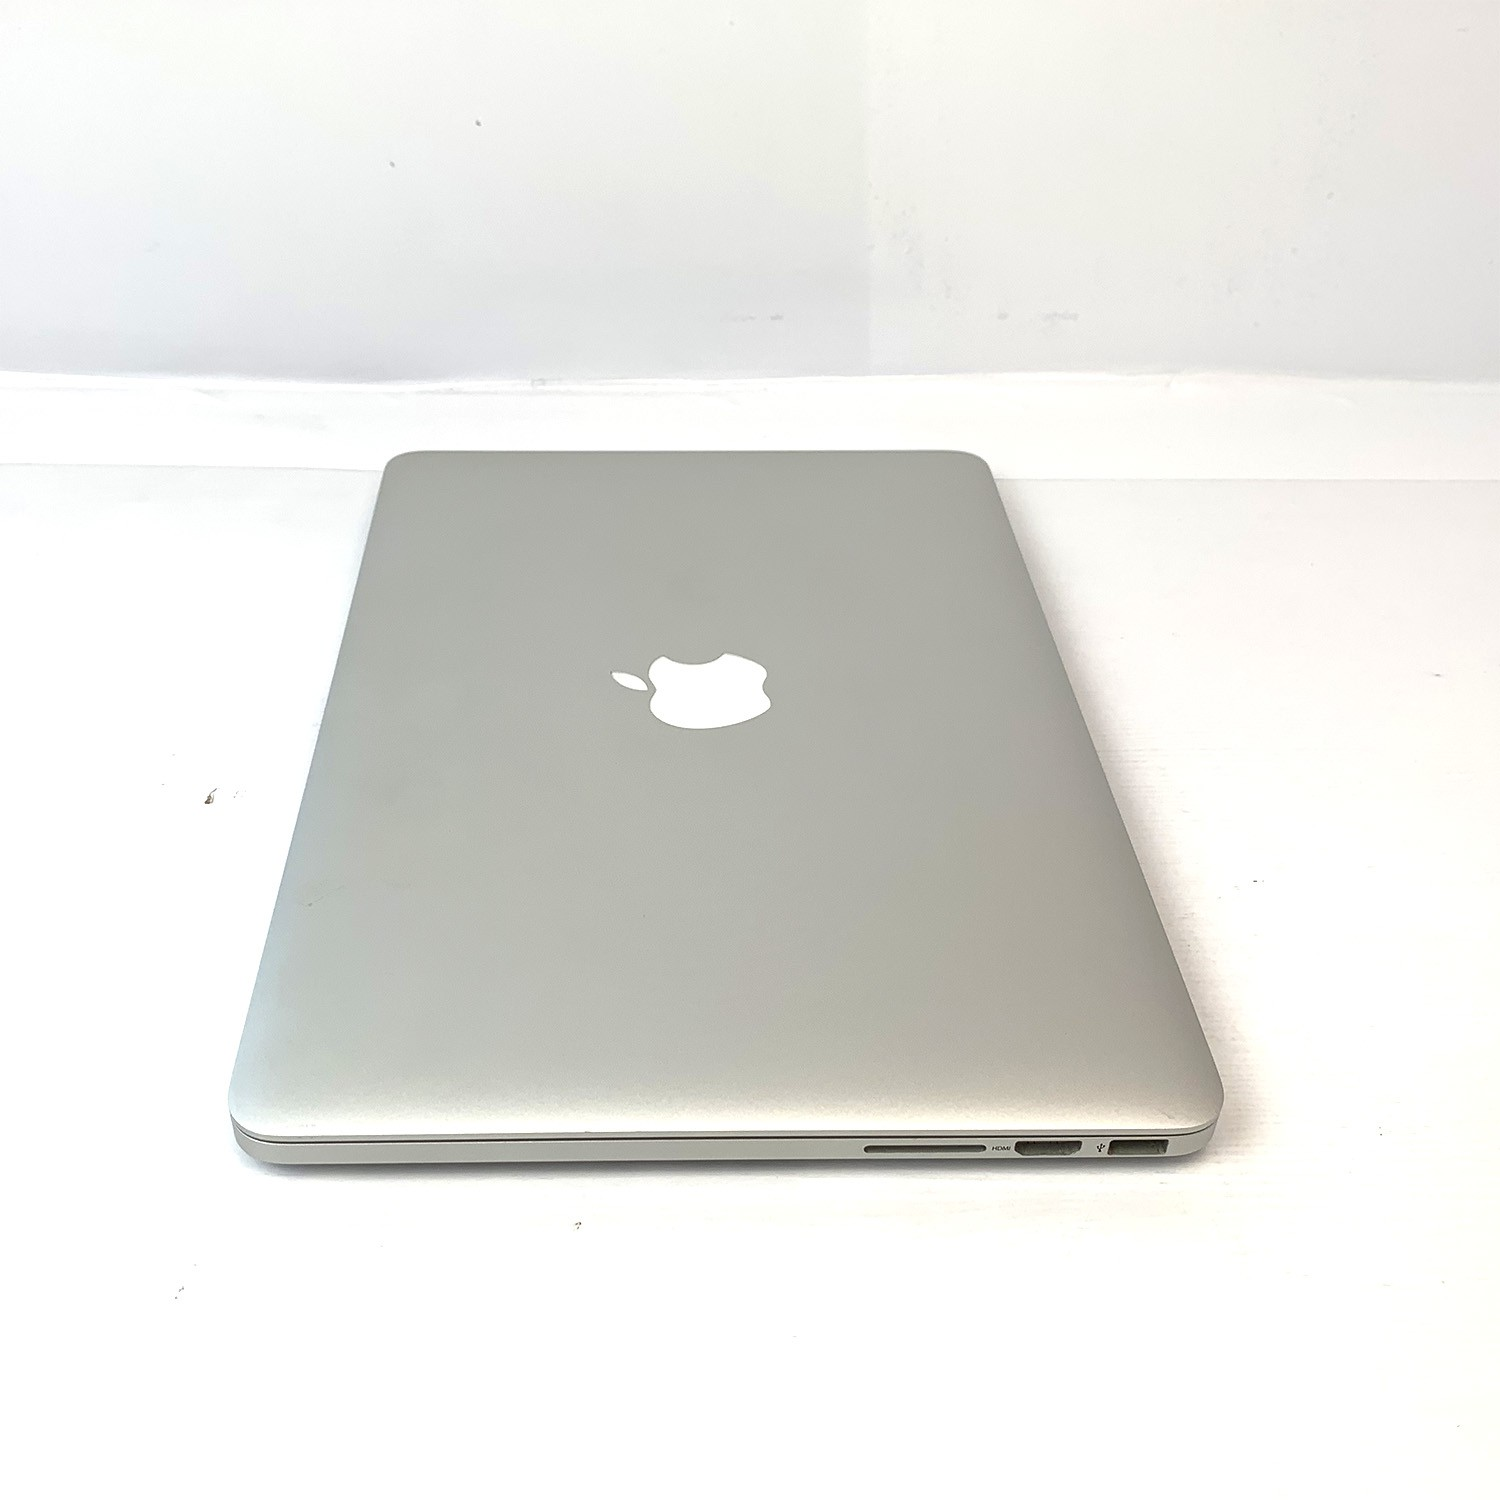 Macbook Pro Retina 13 i5 2.6Ghz 8GB 256GB SSD ME866LL/A Seminovo